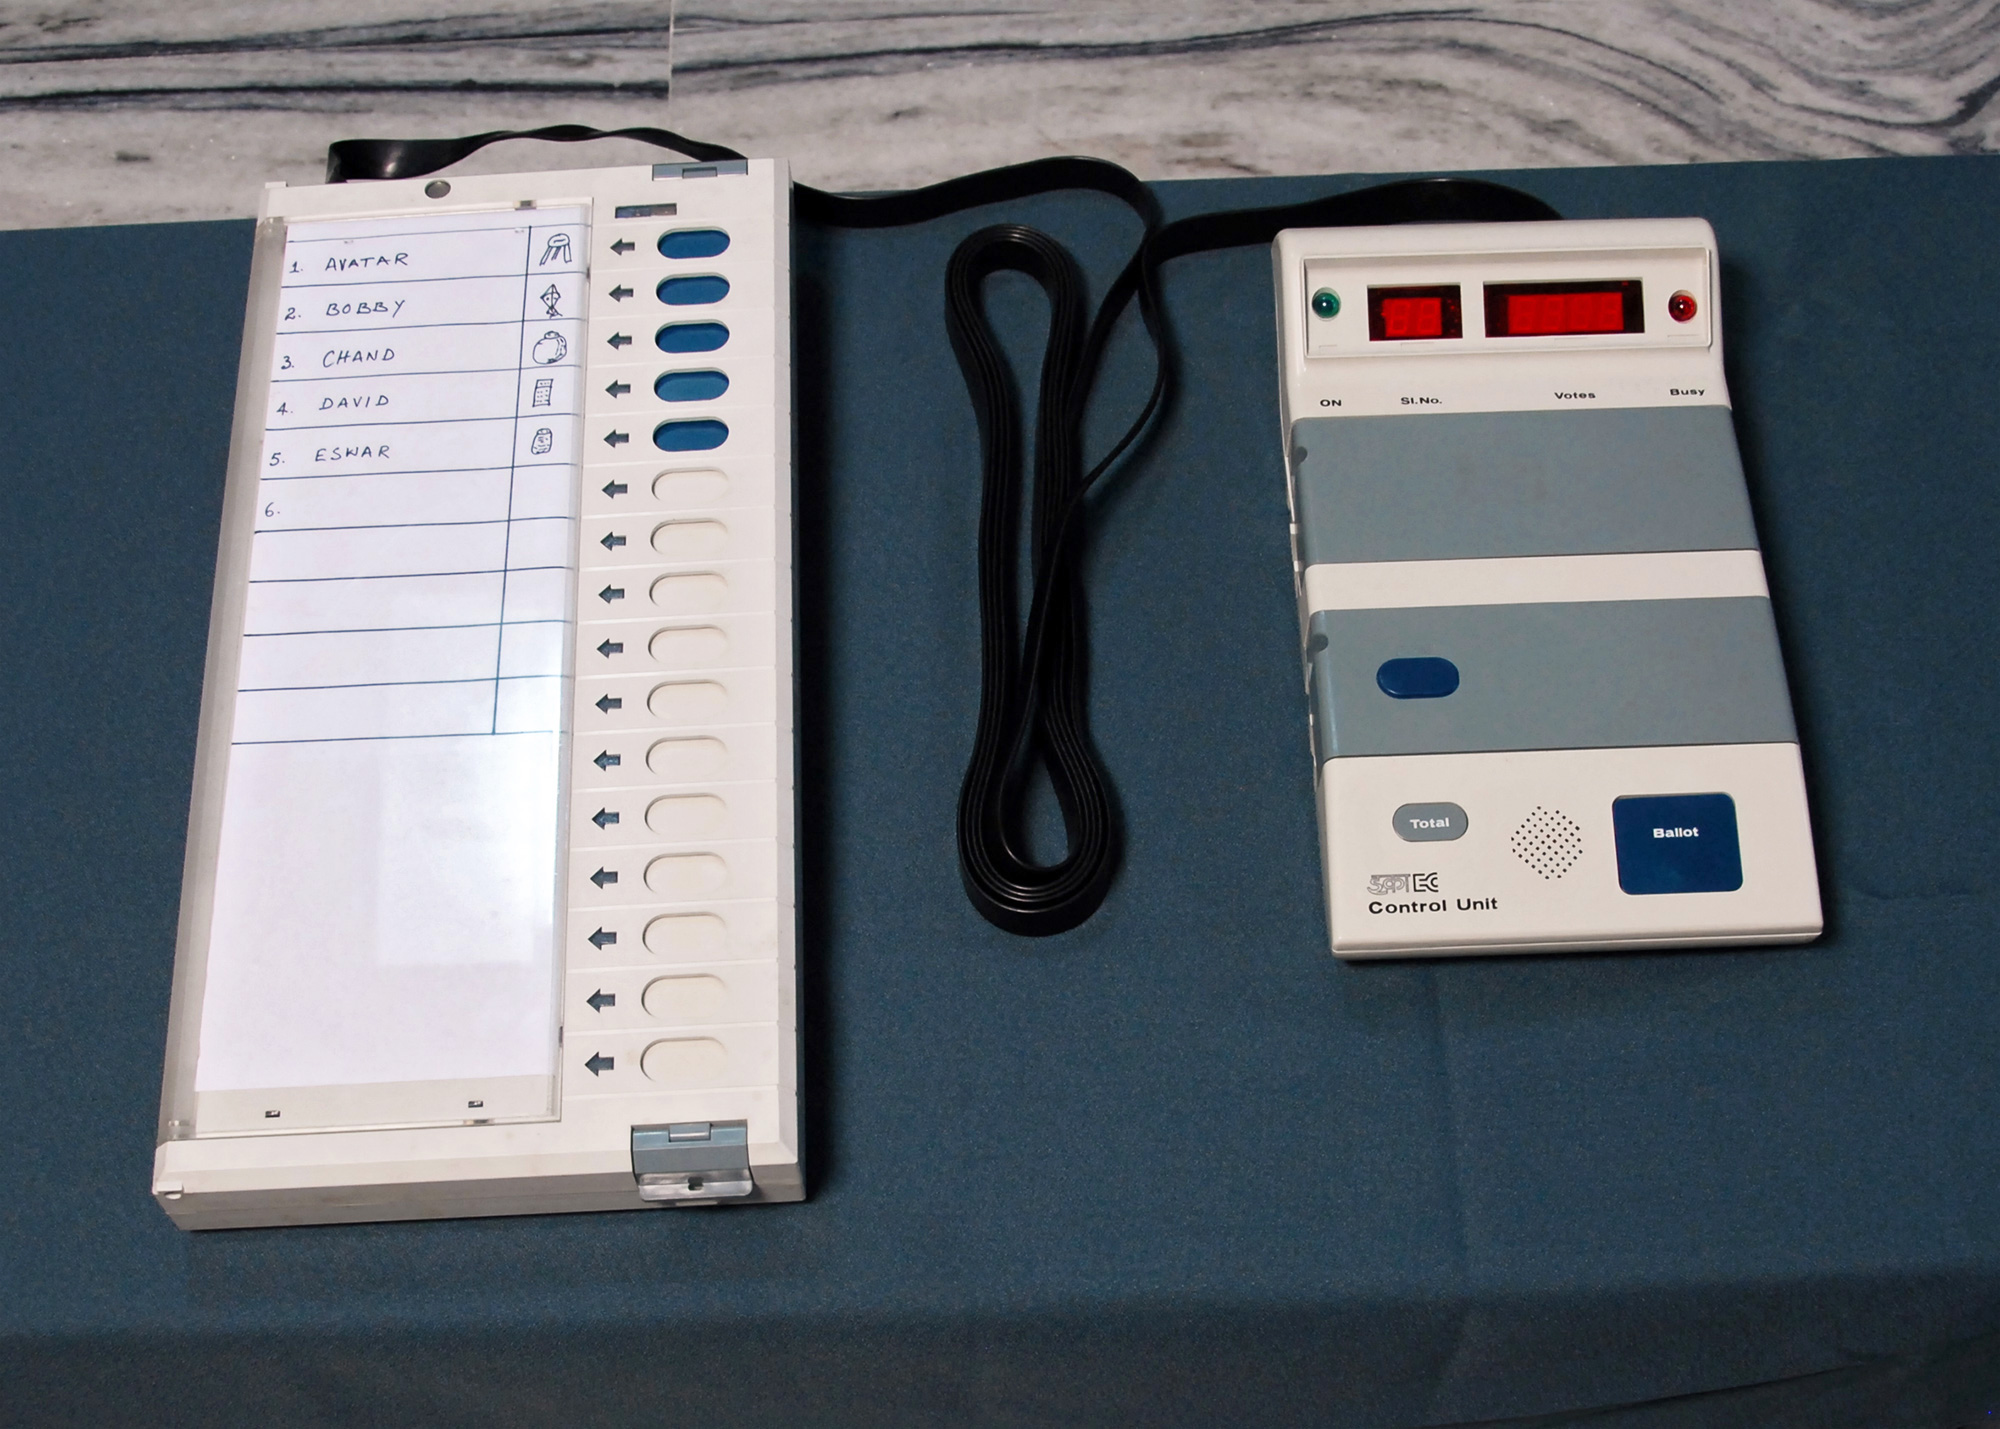 EVMs tamper-proof as ever, asserts EC